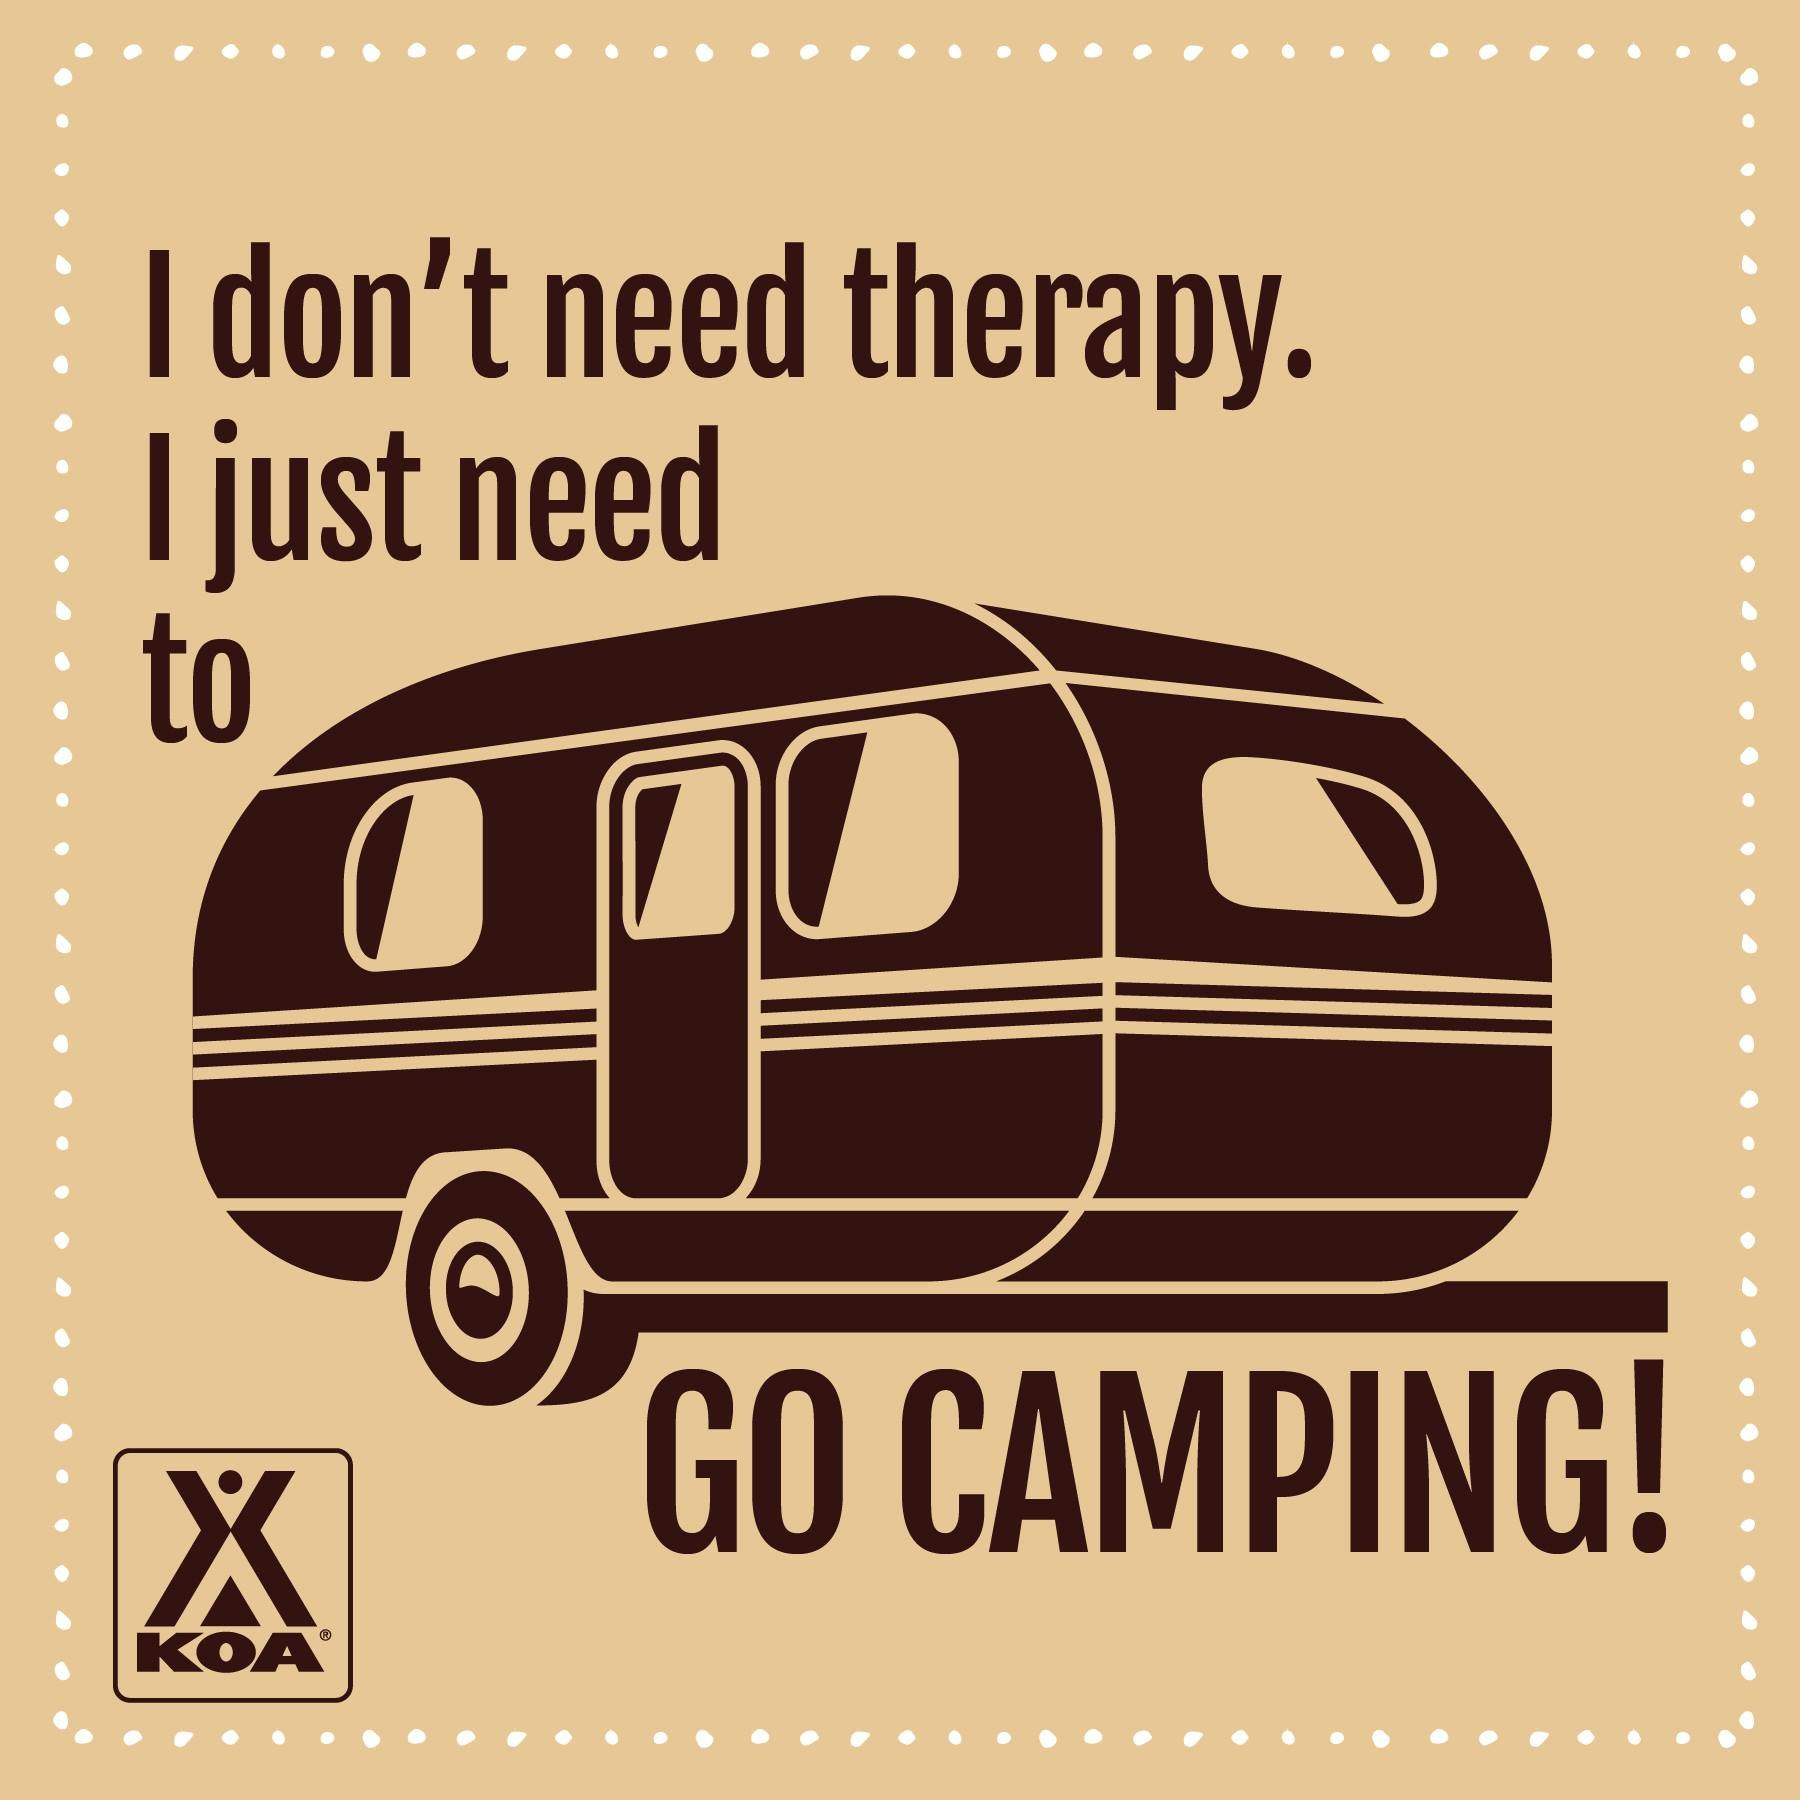 b627a259 I don't need therapy. I just need to go camping. from Starling